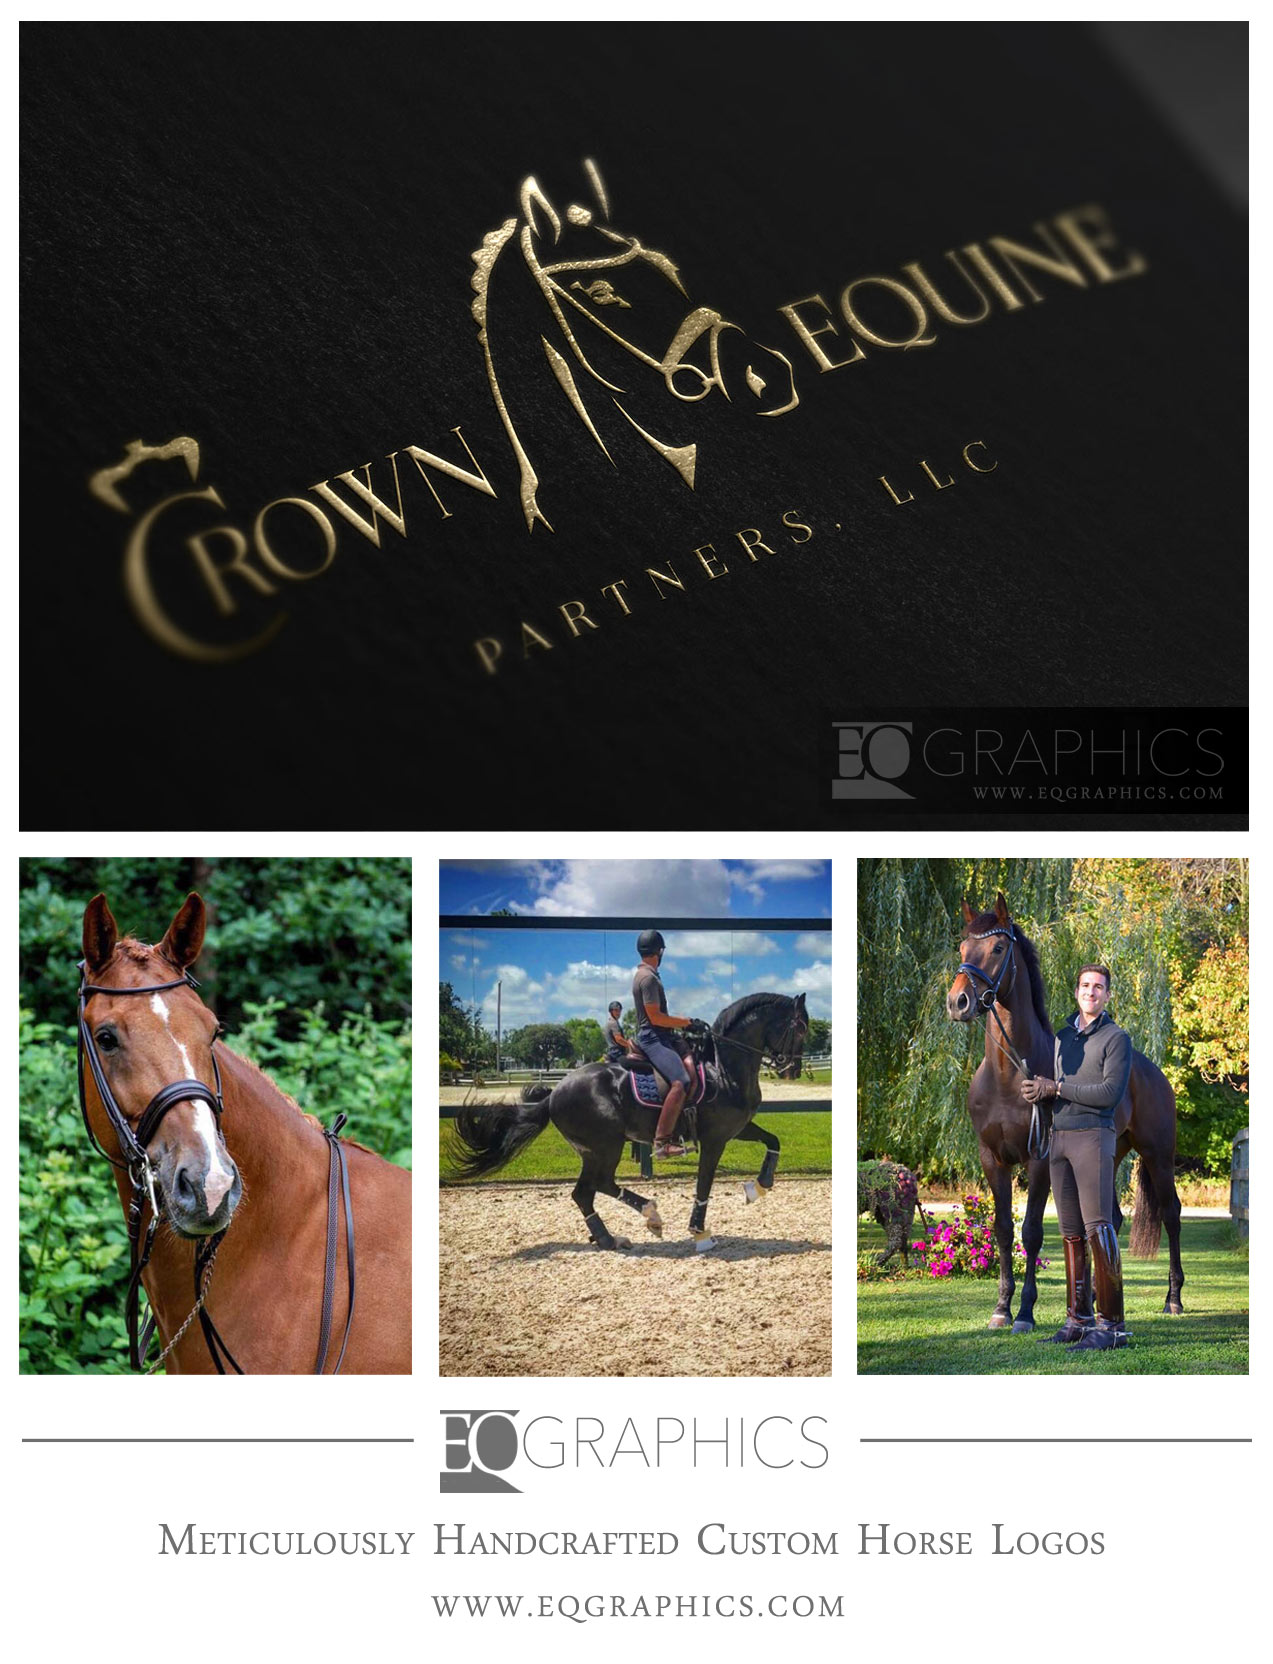 Crown Partner Handcrafted Dressage Logo by EQ Graphics Equestrian Design